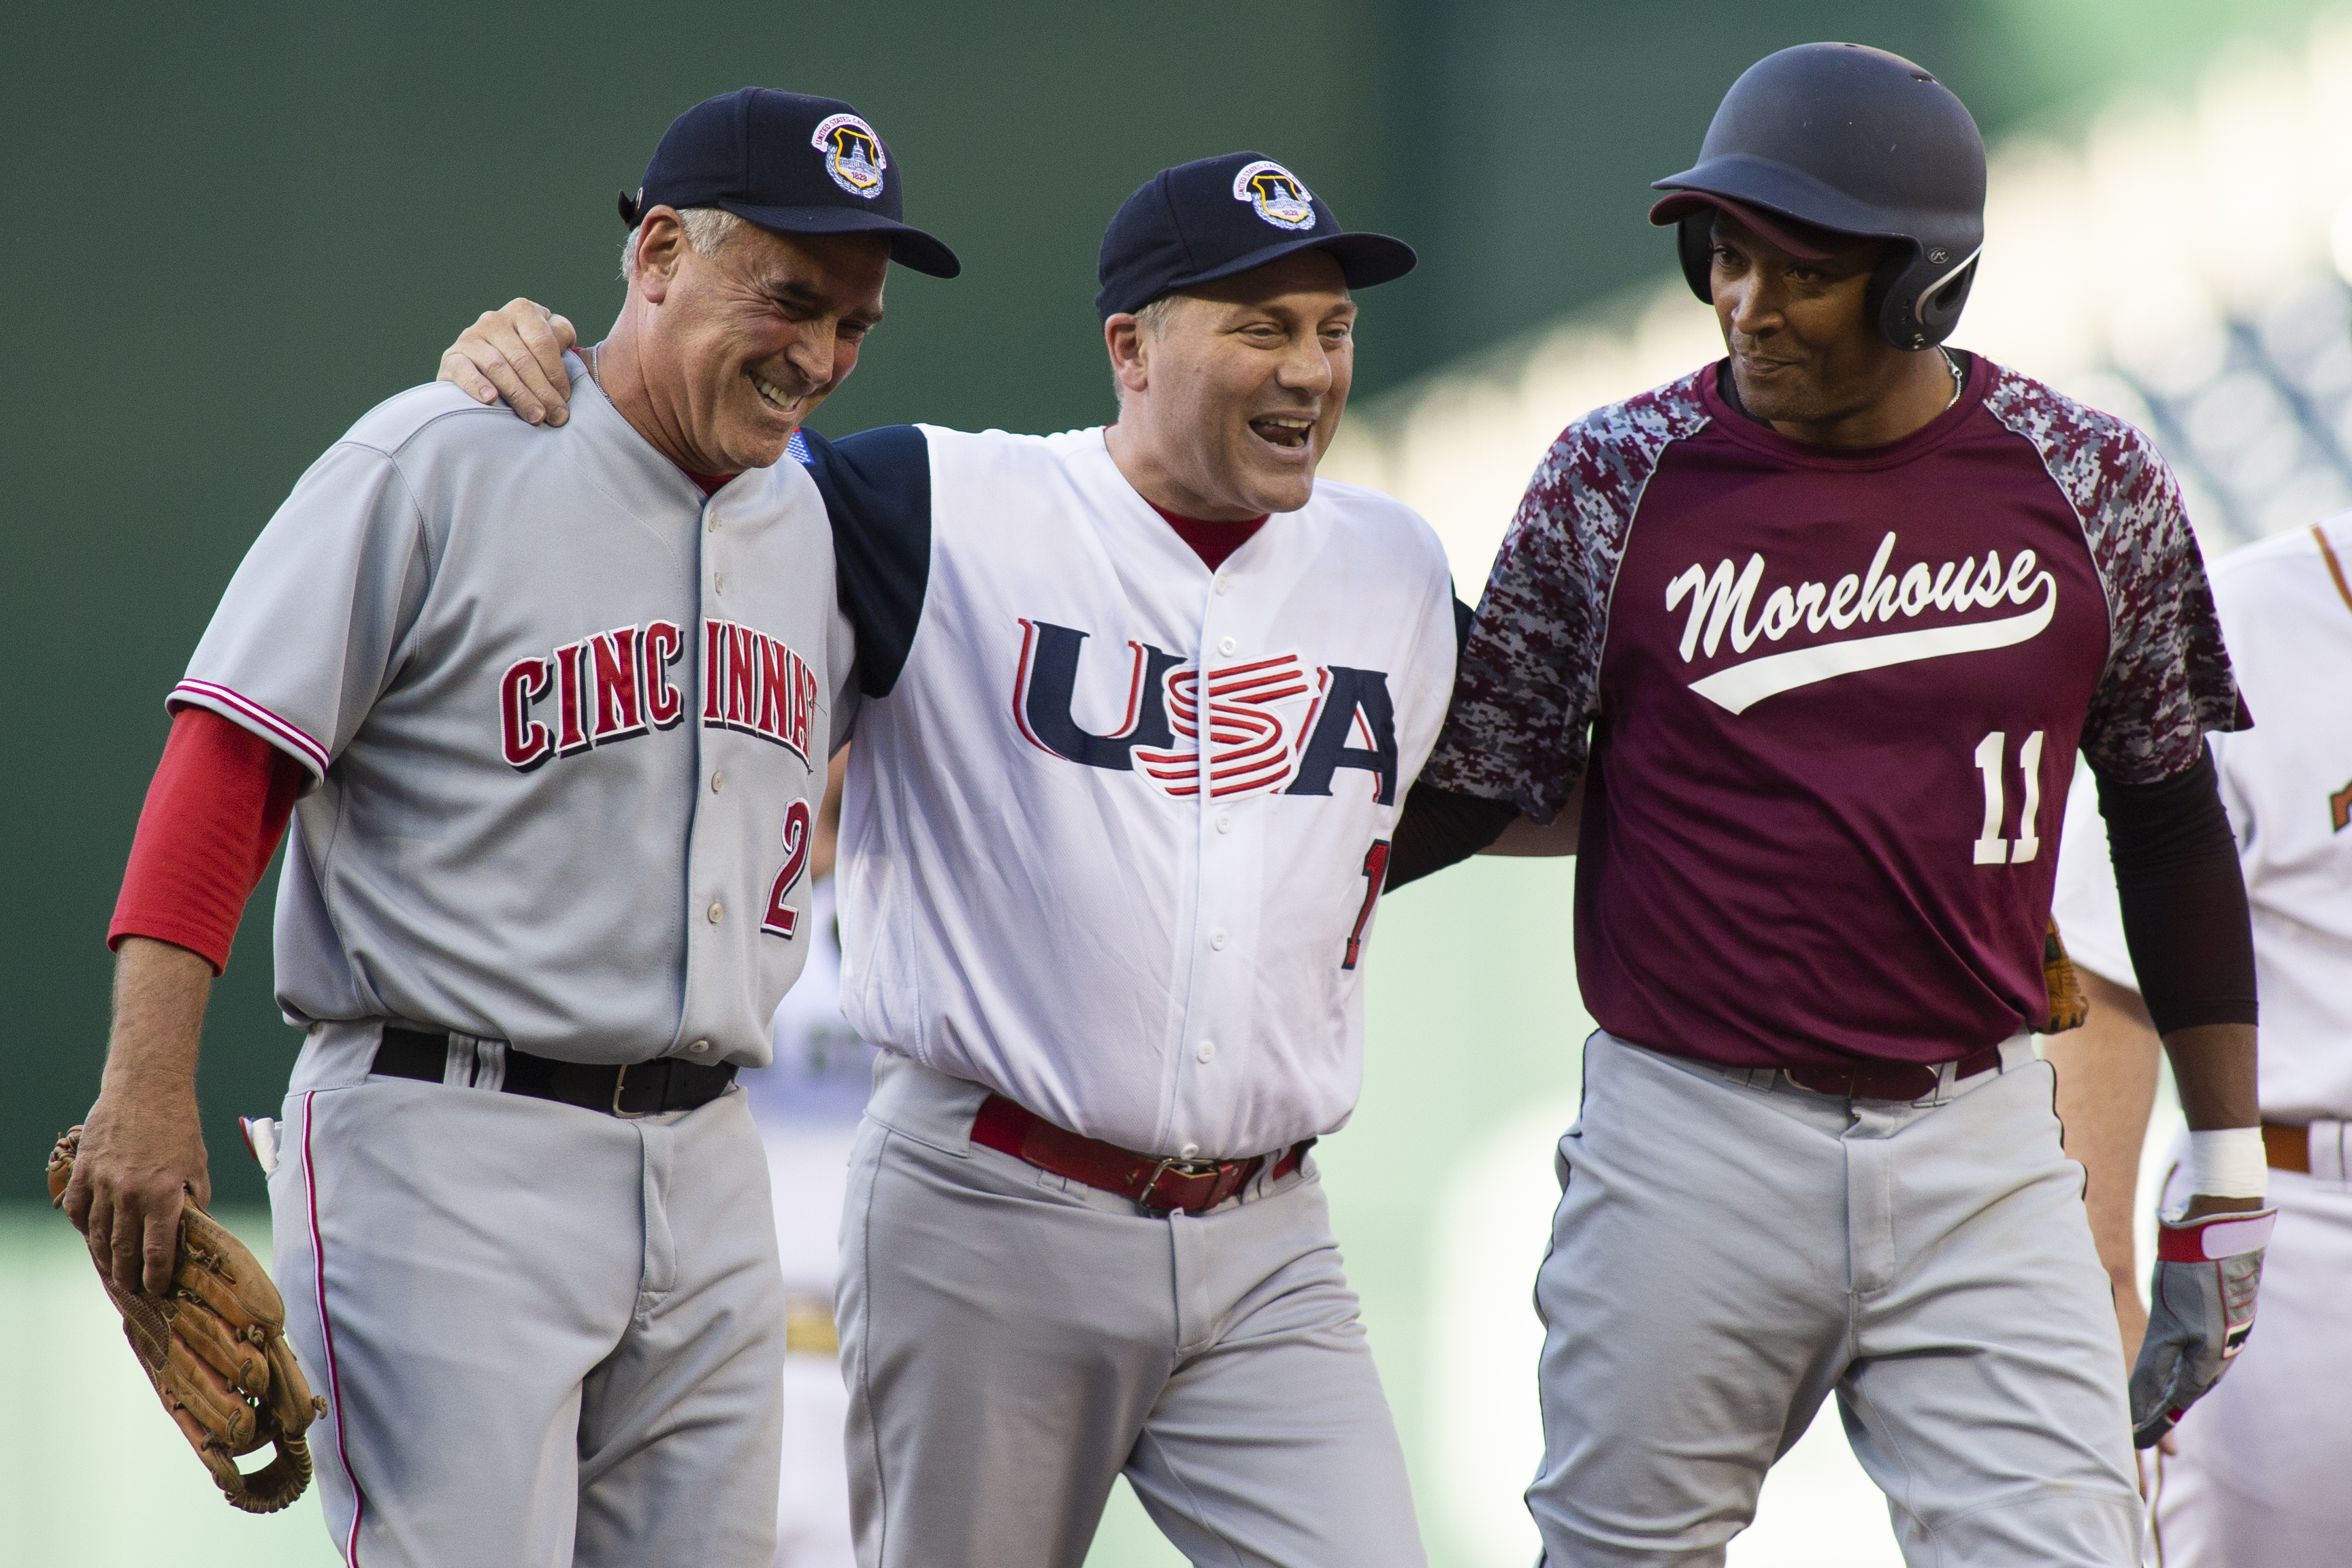 Rep Steve Scalise (R-LA) (C) is helped off the field by Rep Cedric Richmond (D-LA) (R) and Rep Bran Wenstroup (R-OH) (L) after playing second base during the Congressional Baseball Game on June 14, 2018 in Washington, DC. Alex Edelman/Getty Images